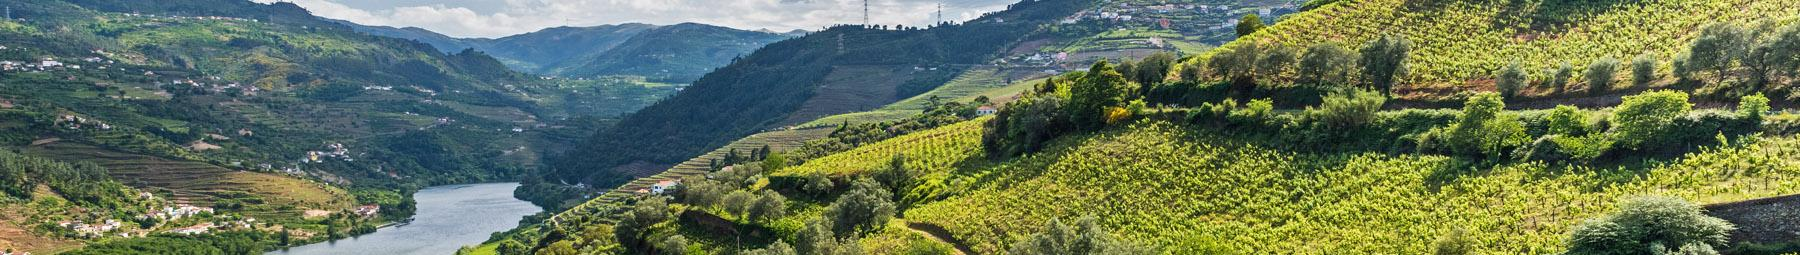 Lush vineyards on the Douro River.